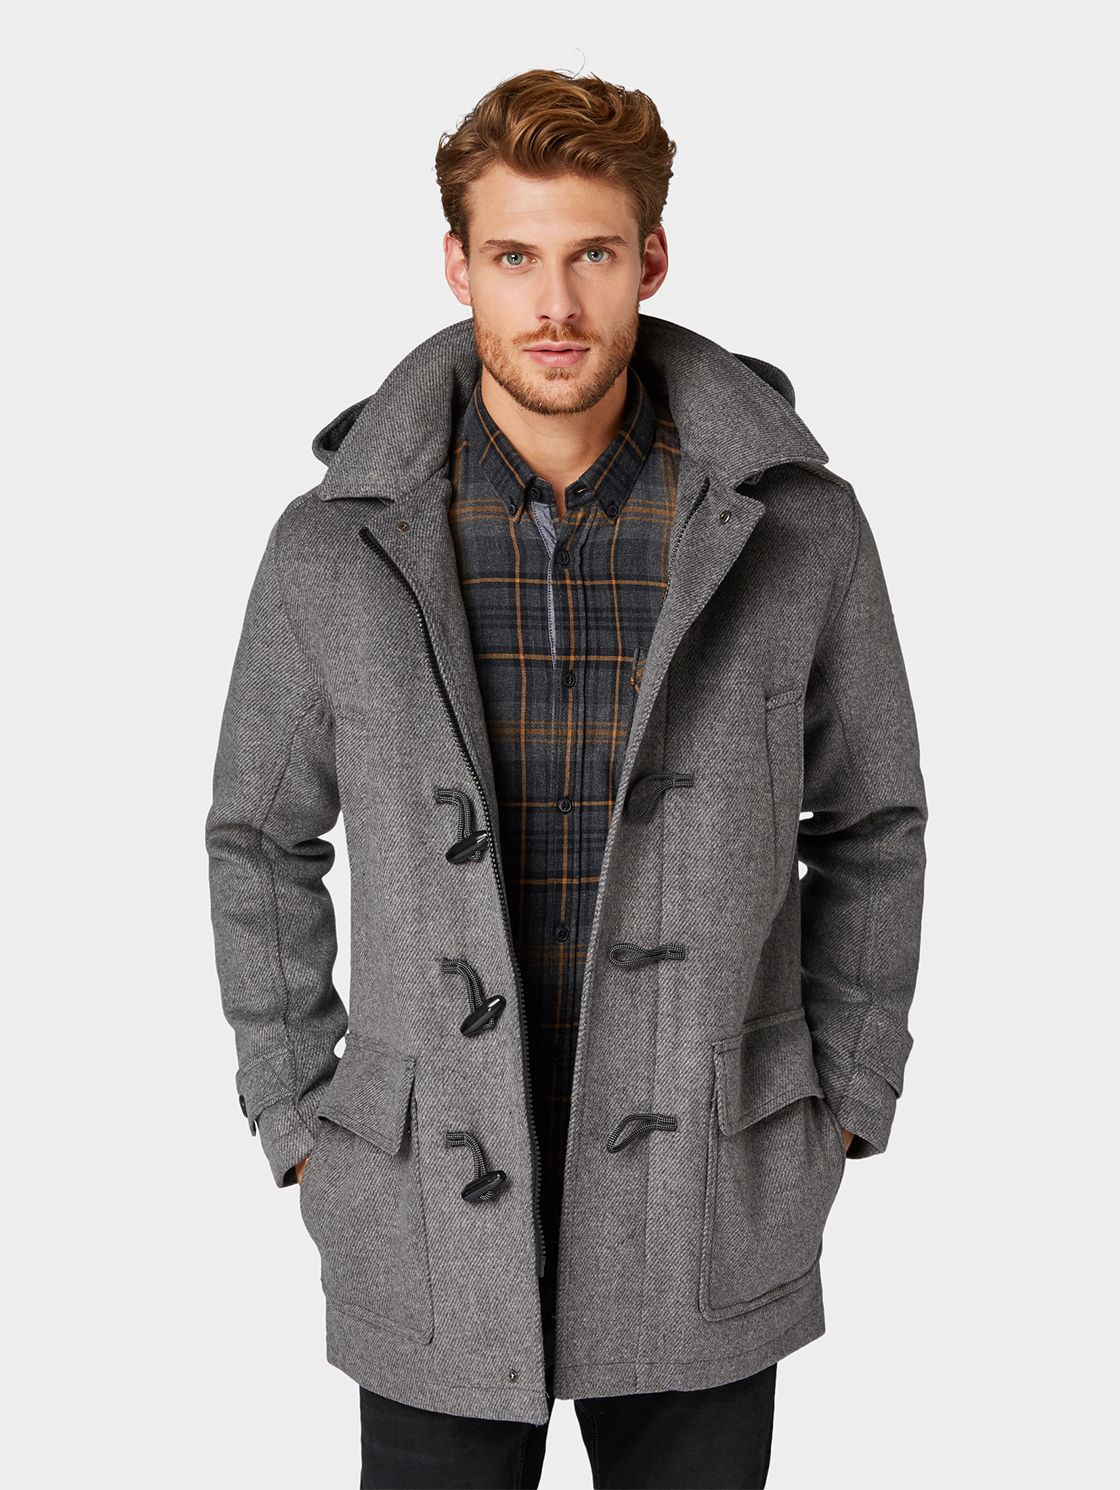 Coat Order Instead 99 Now 99 €149 For At €169 Duffle Of N80vPyOmnw